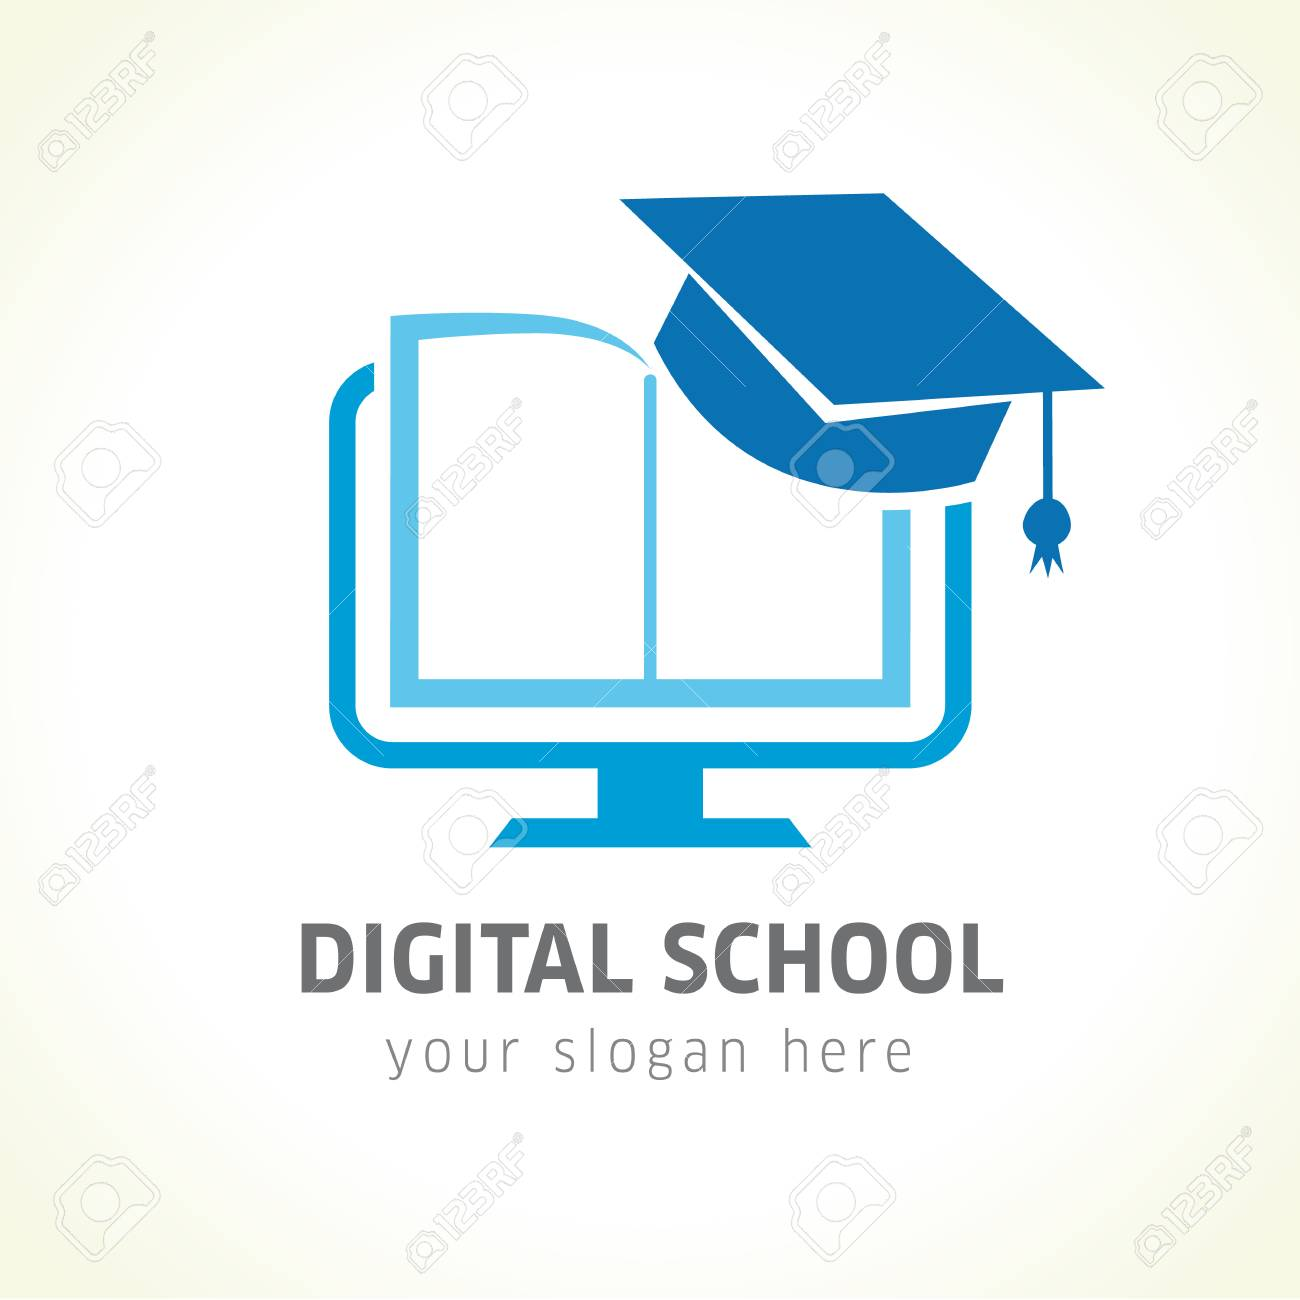 Digital school book online education logo. Digital school book online education logo. Digital open book with pages in monitor emblem and graduation hat. E-book or e-reader soft icon. On-line education blue vector sign - 86958559